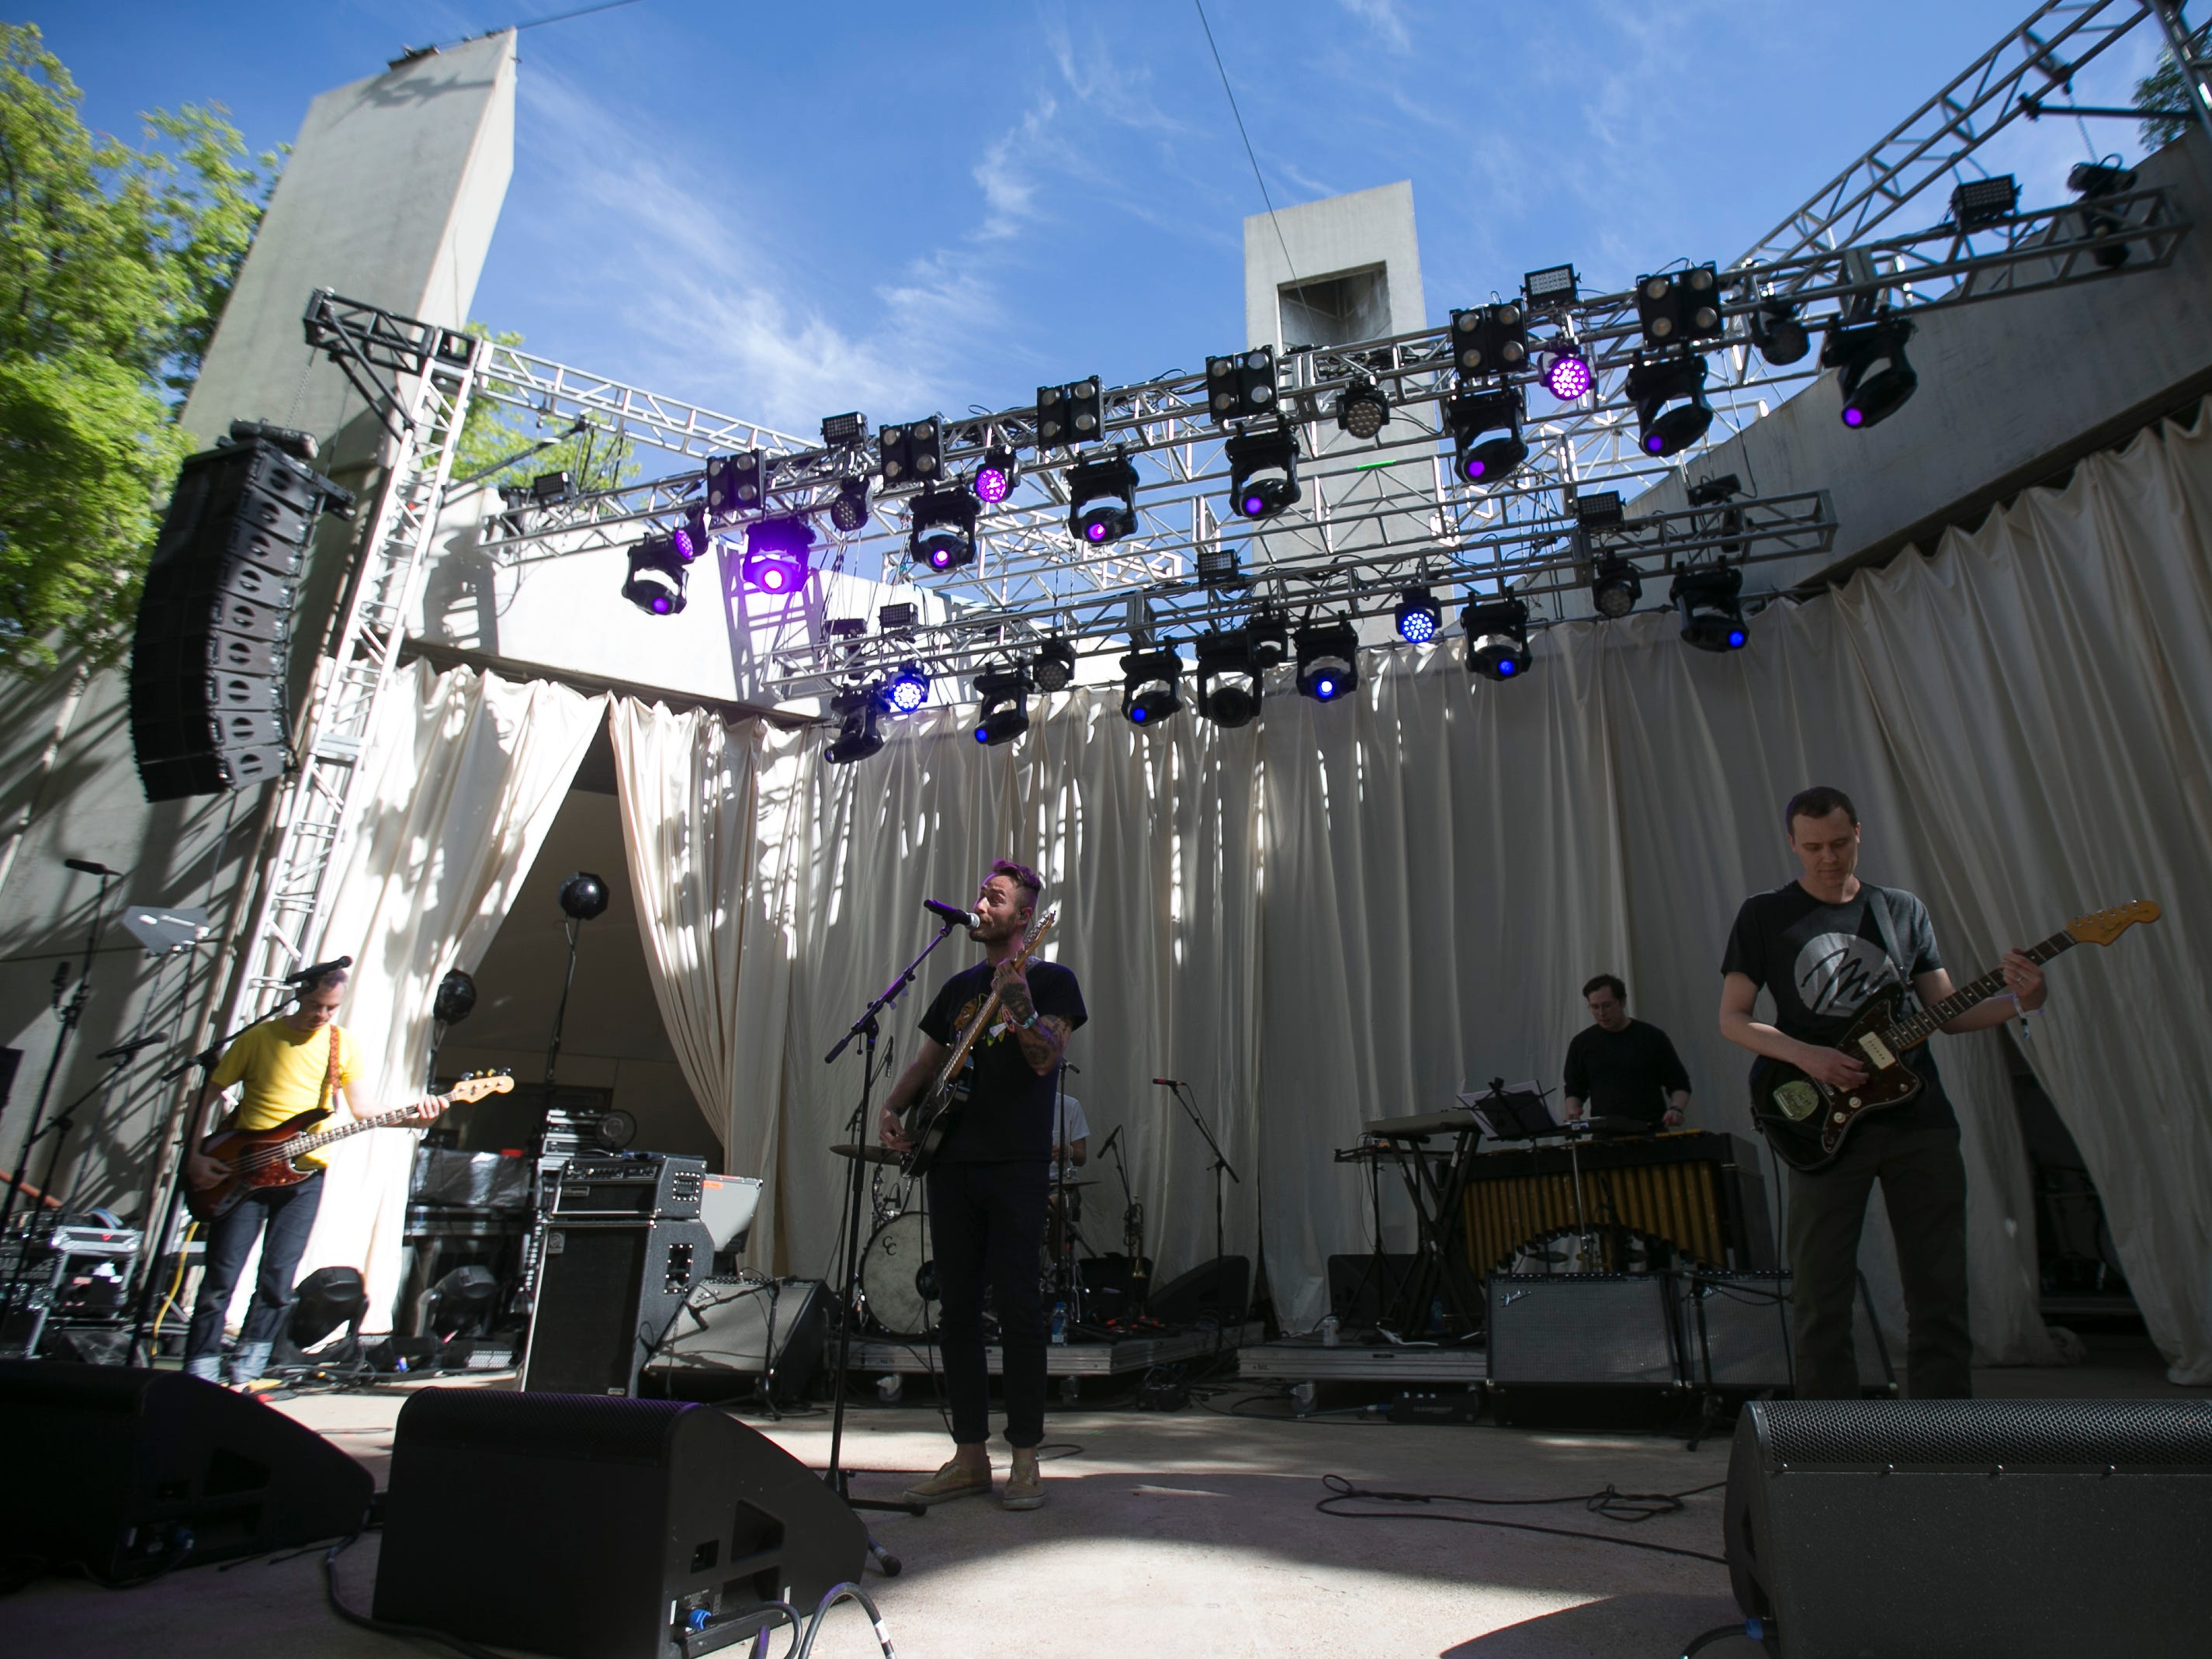 American Football performs on the main stage at the 2019 FORM Arcosanti music festival near Camp Verde, Arizona, on May 10, 2019.